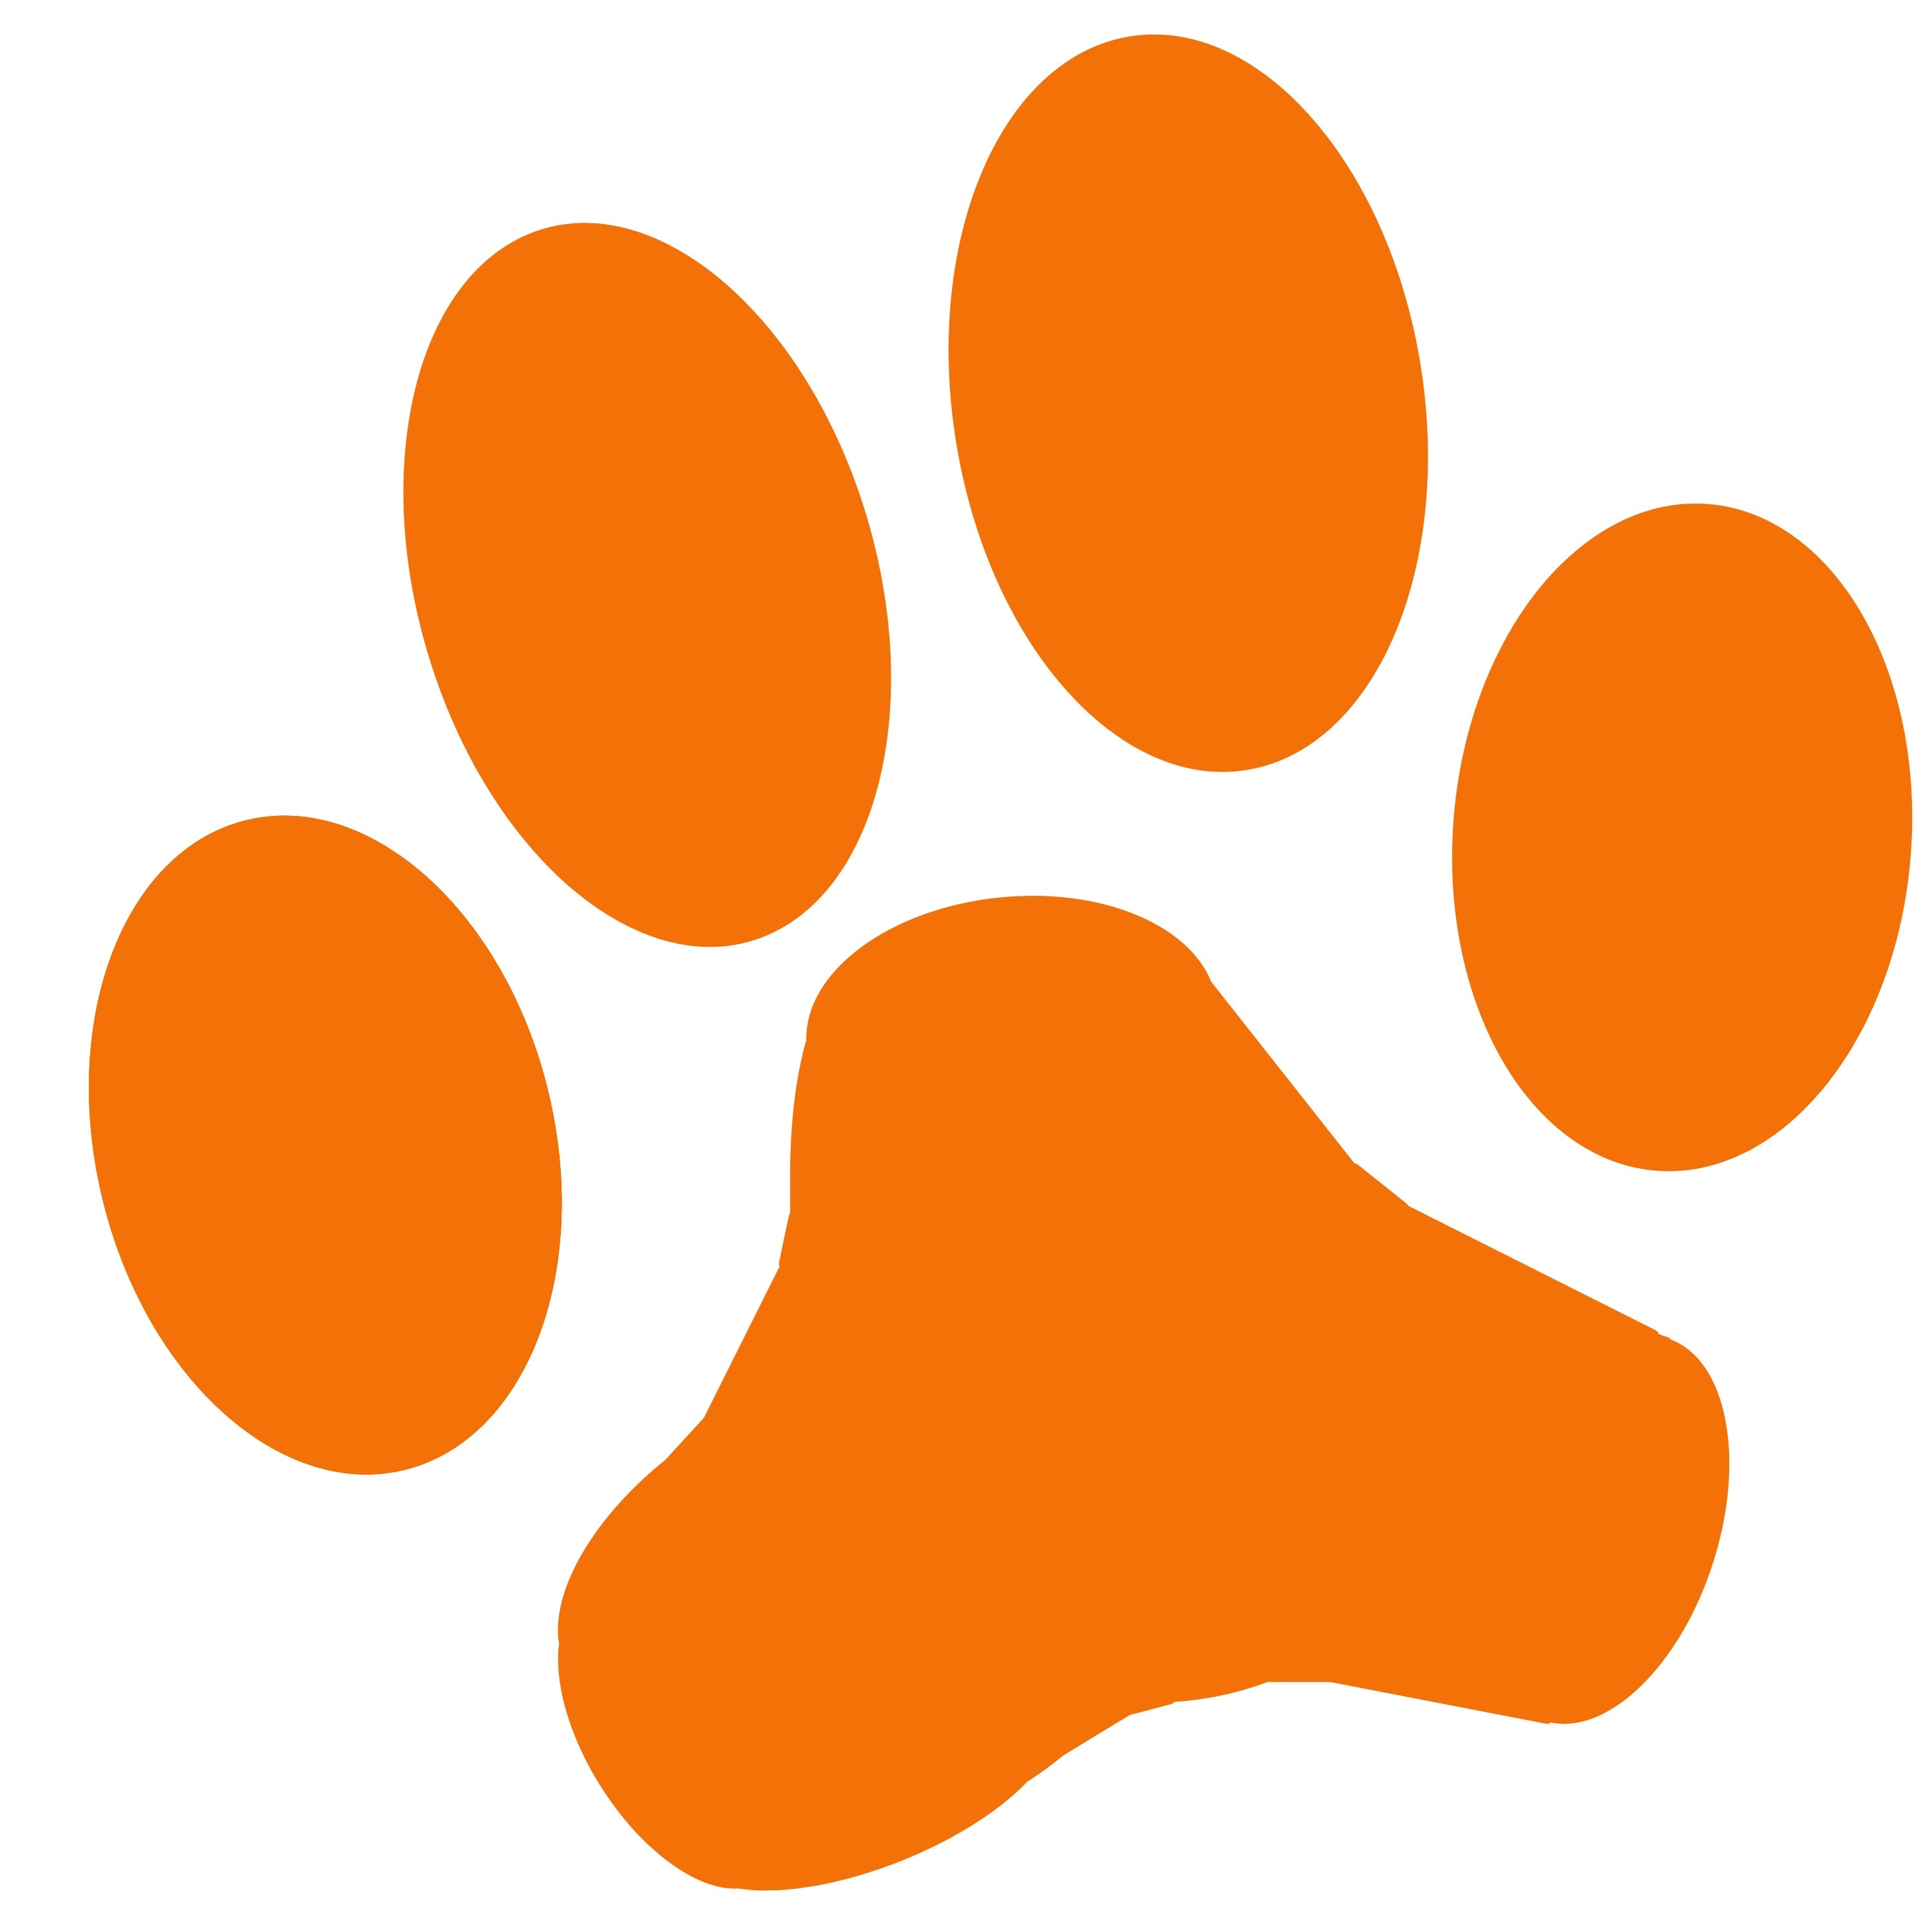 3000x3000 38 Dog Paw Clipart Images Free Graphics Icons And Simple Wildcat